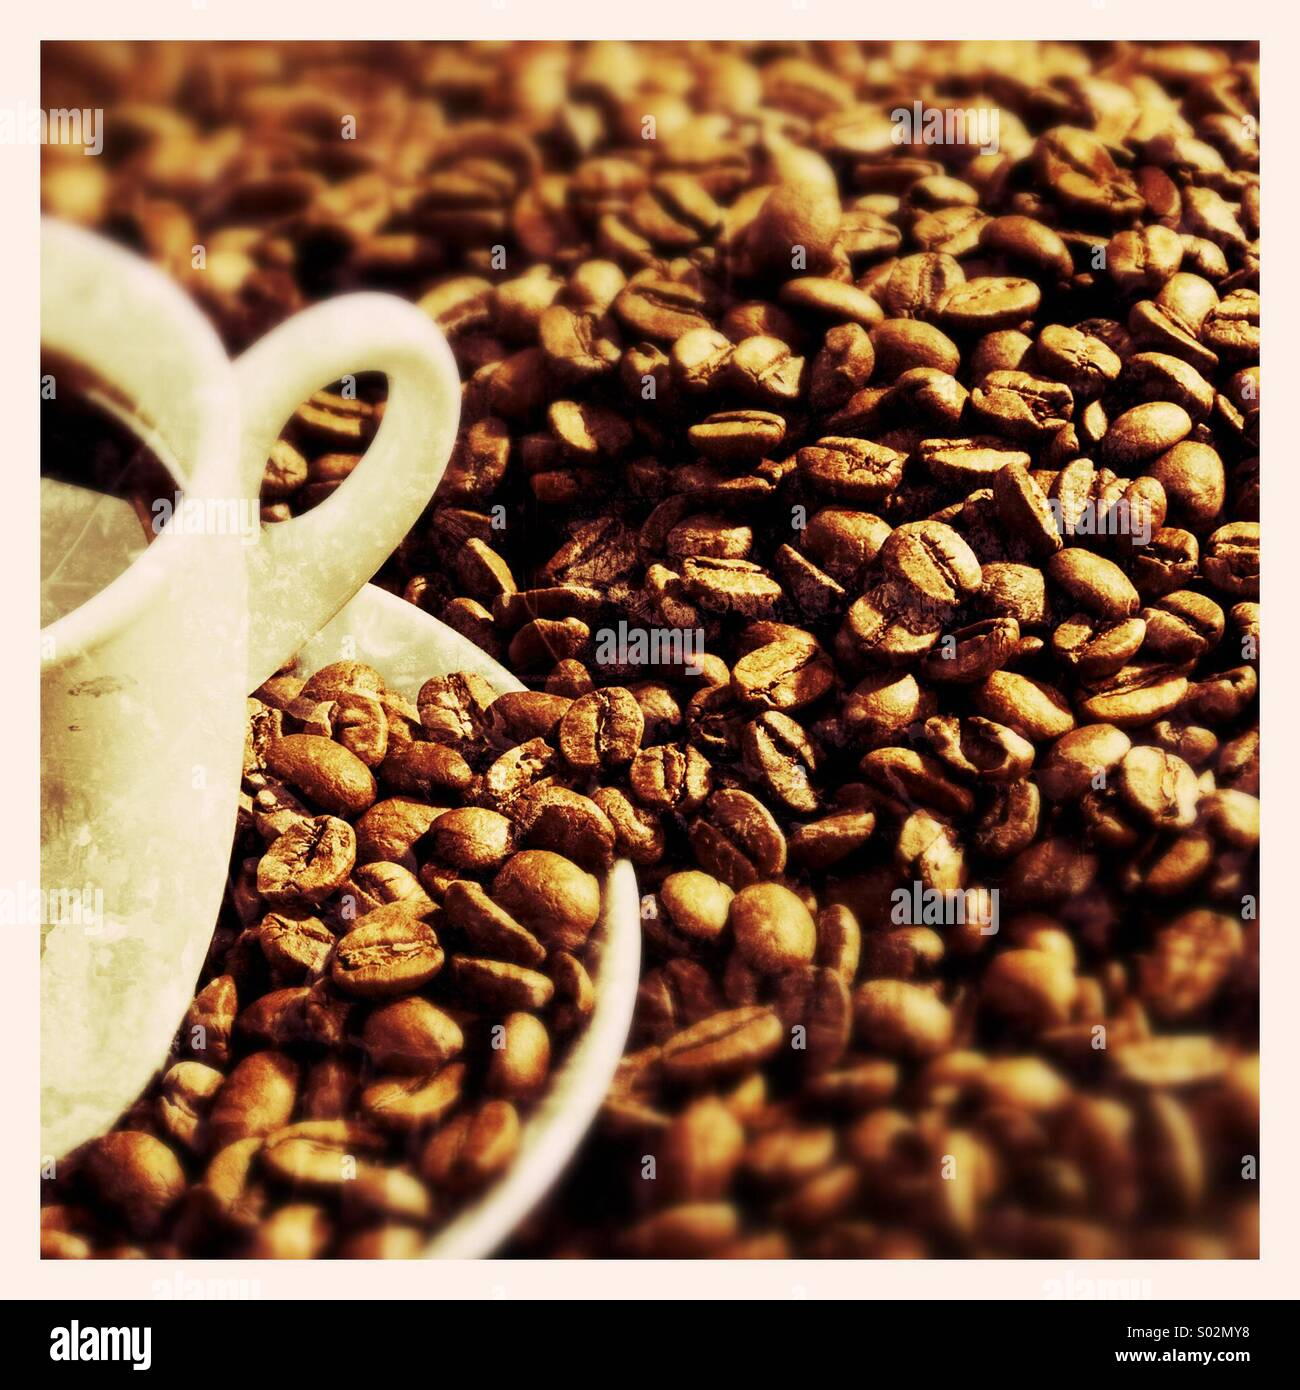 Coffee beans and coffee cup - Stock Image